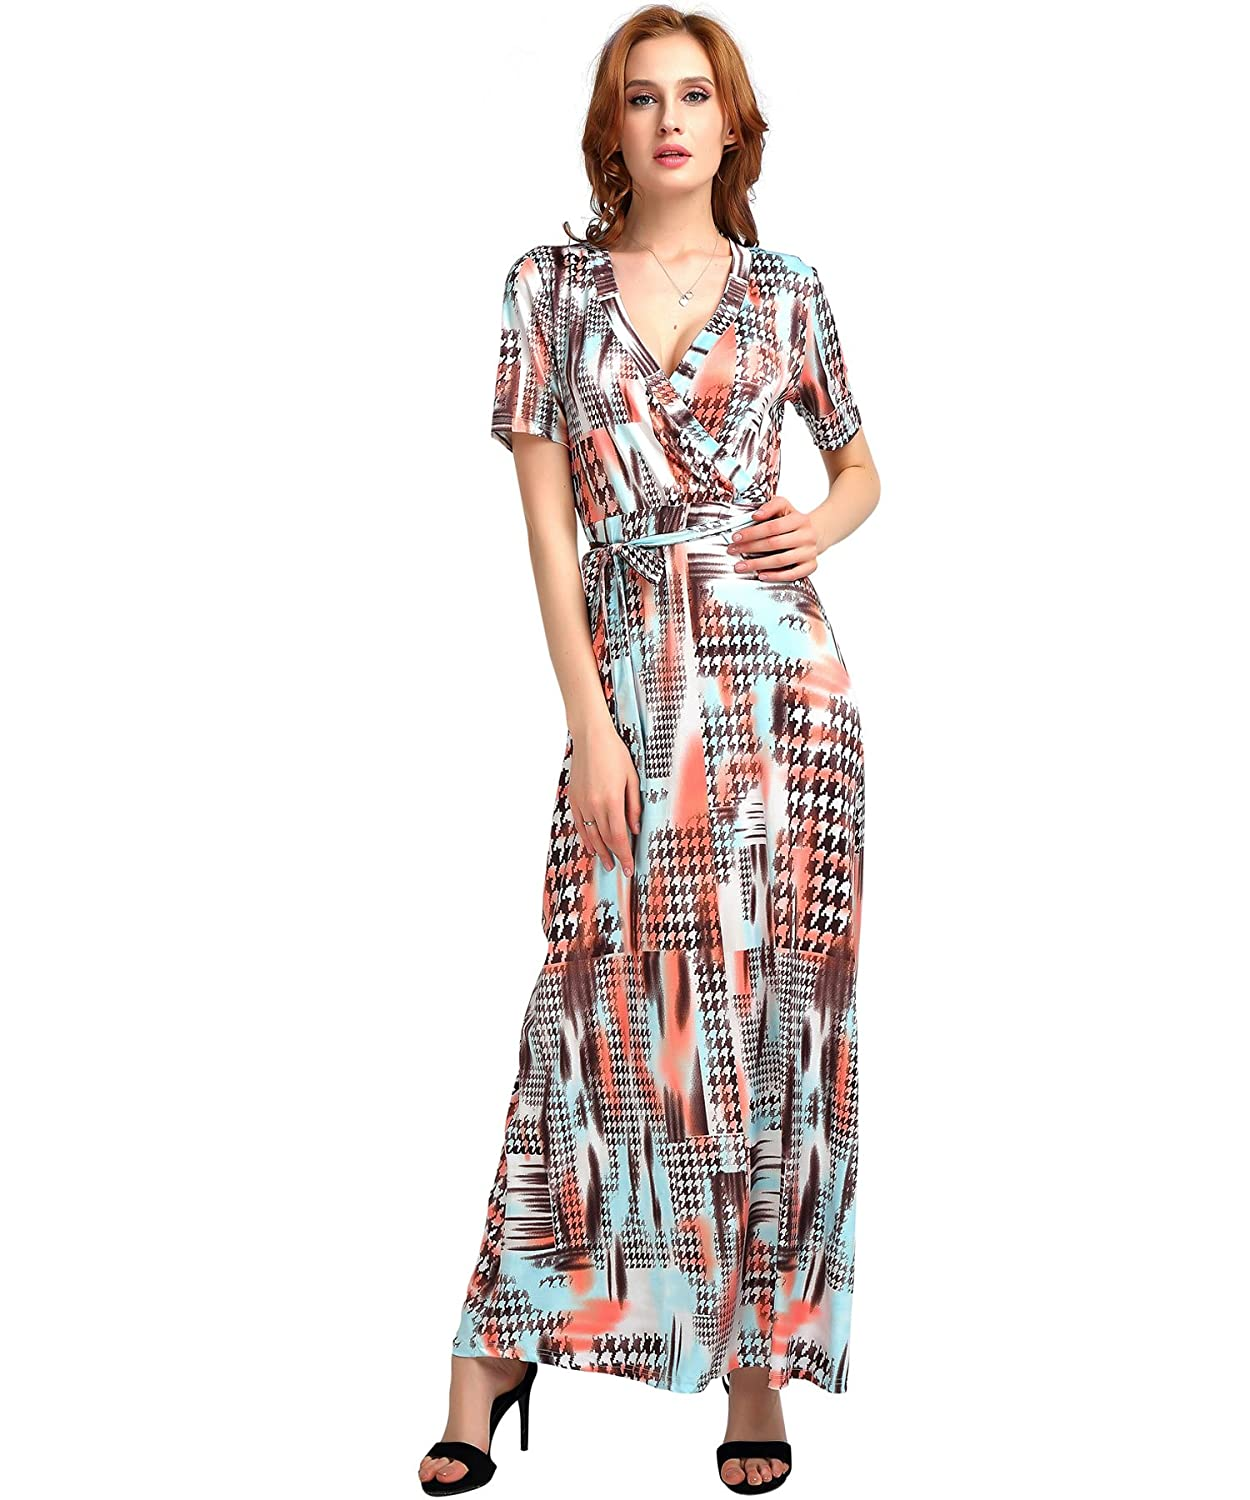 e3aca63916148 Floral Maxi Dress Short Sleeve Printed Pattern V Neck Slim Shirt Long Dress  at Amazon Women's Clothing store: